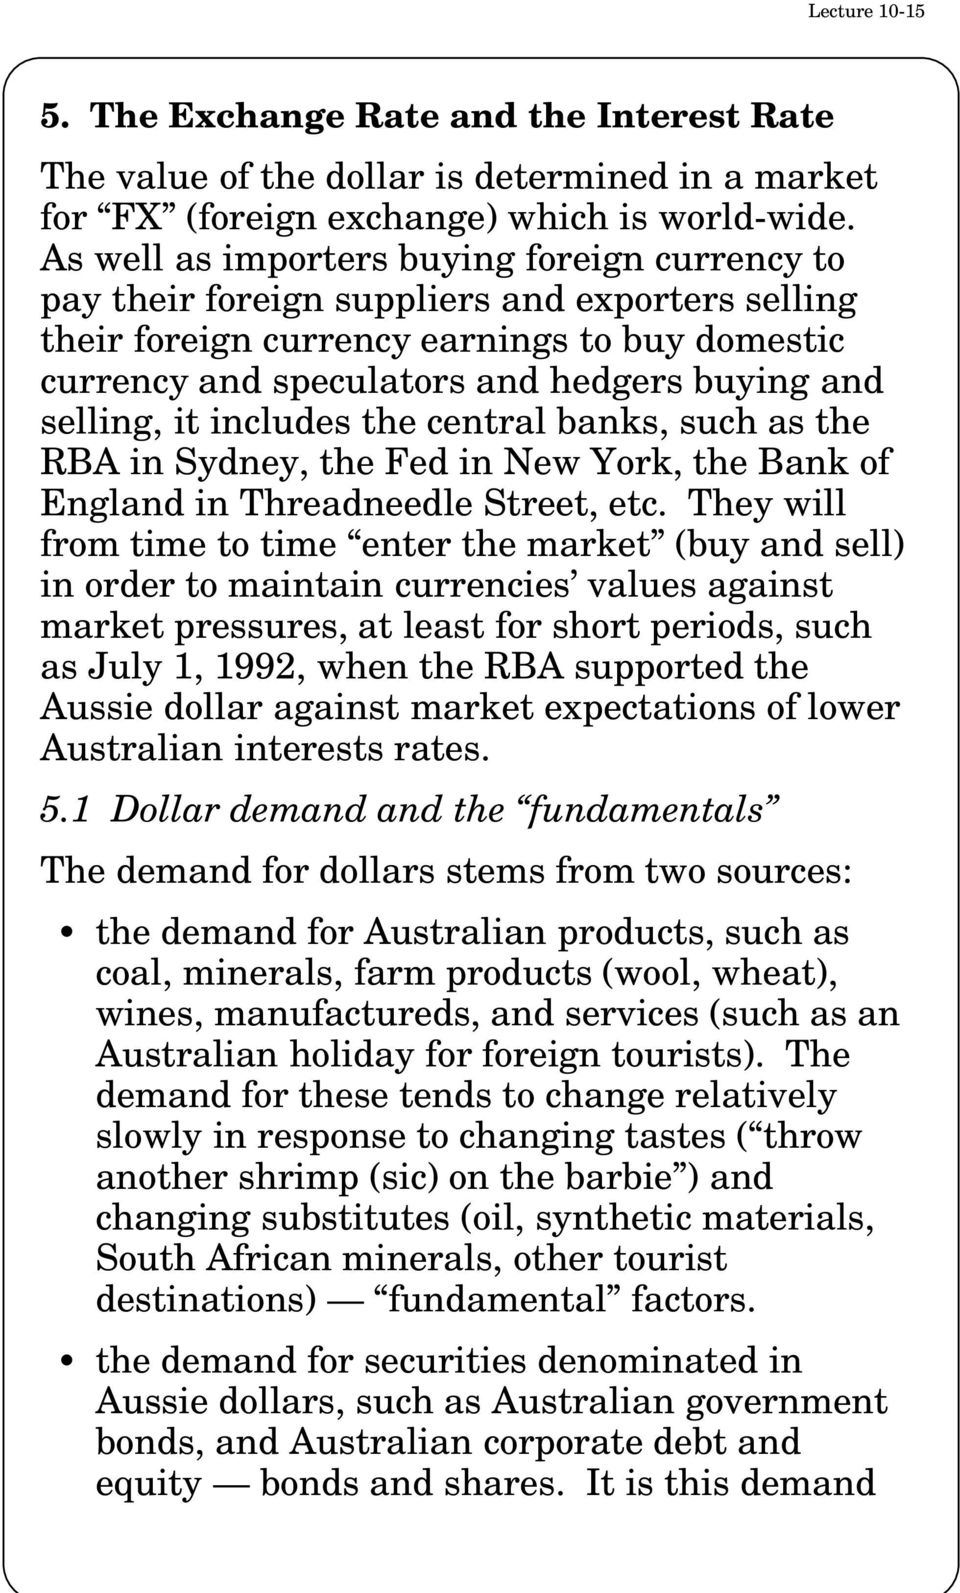 selling, it includes the central banks, such as the RBA in Sydney, the Fed in New York, the Bank of England in Threadneedle Street, etc.